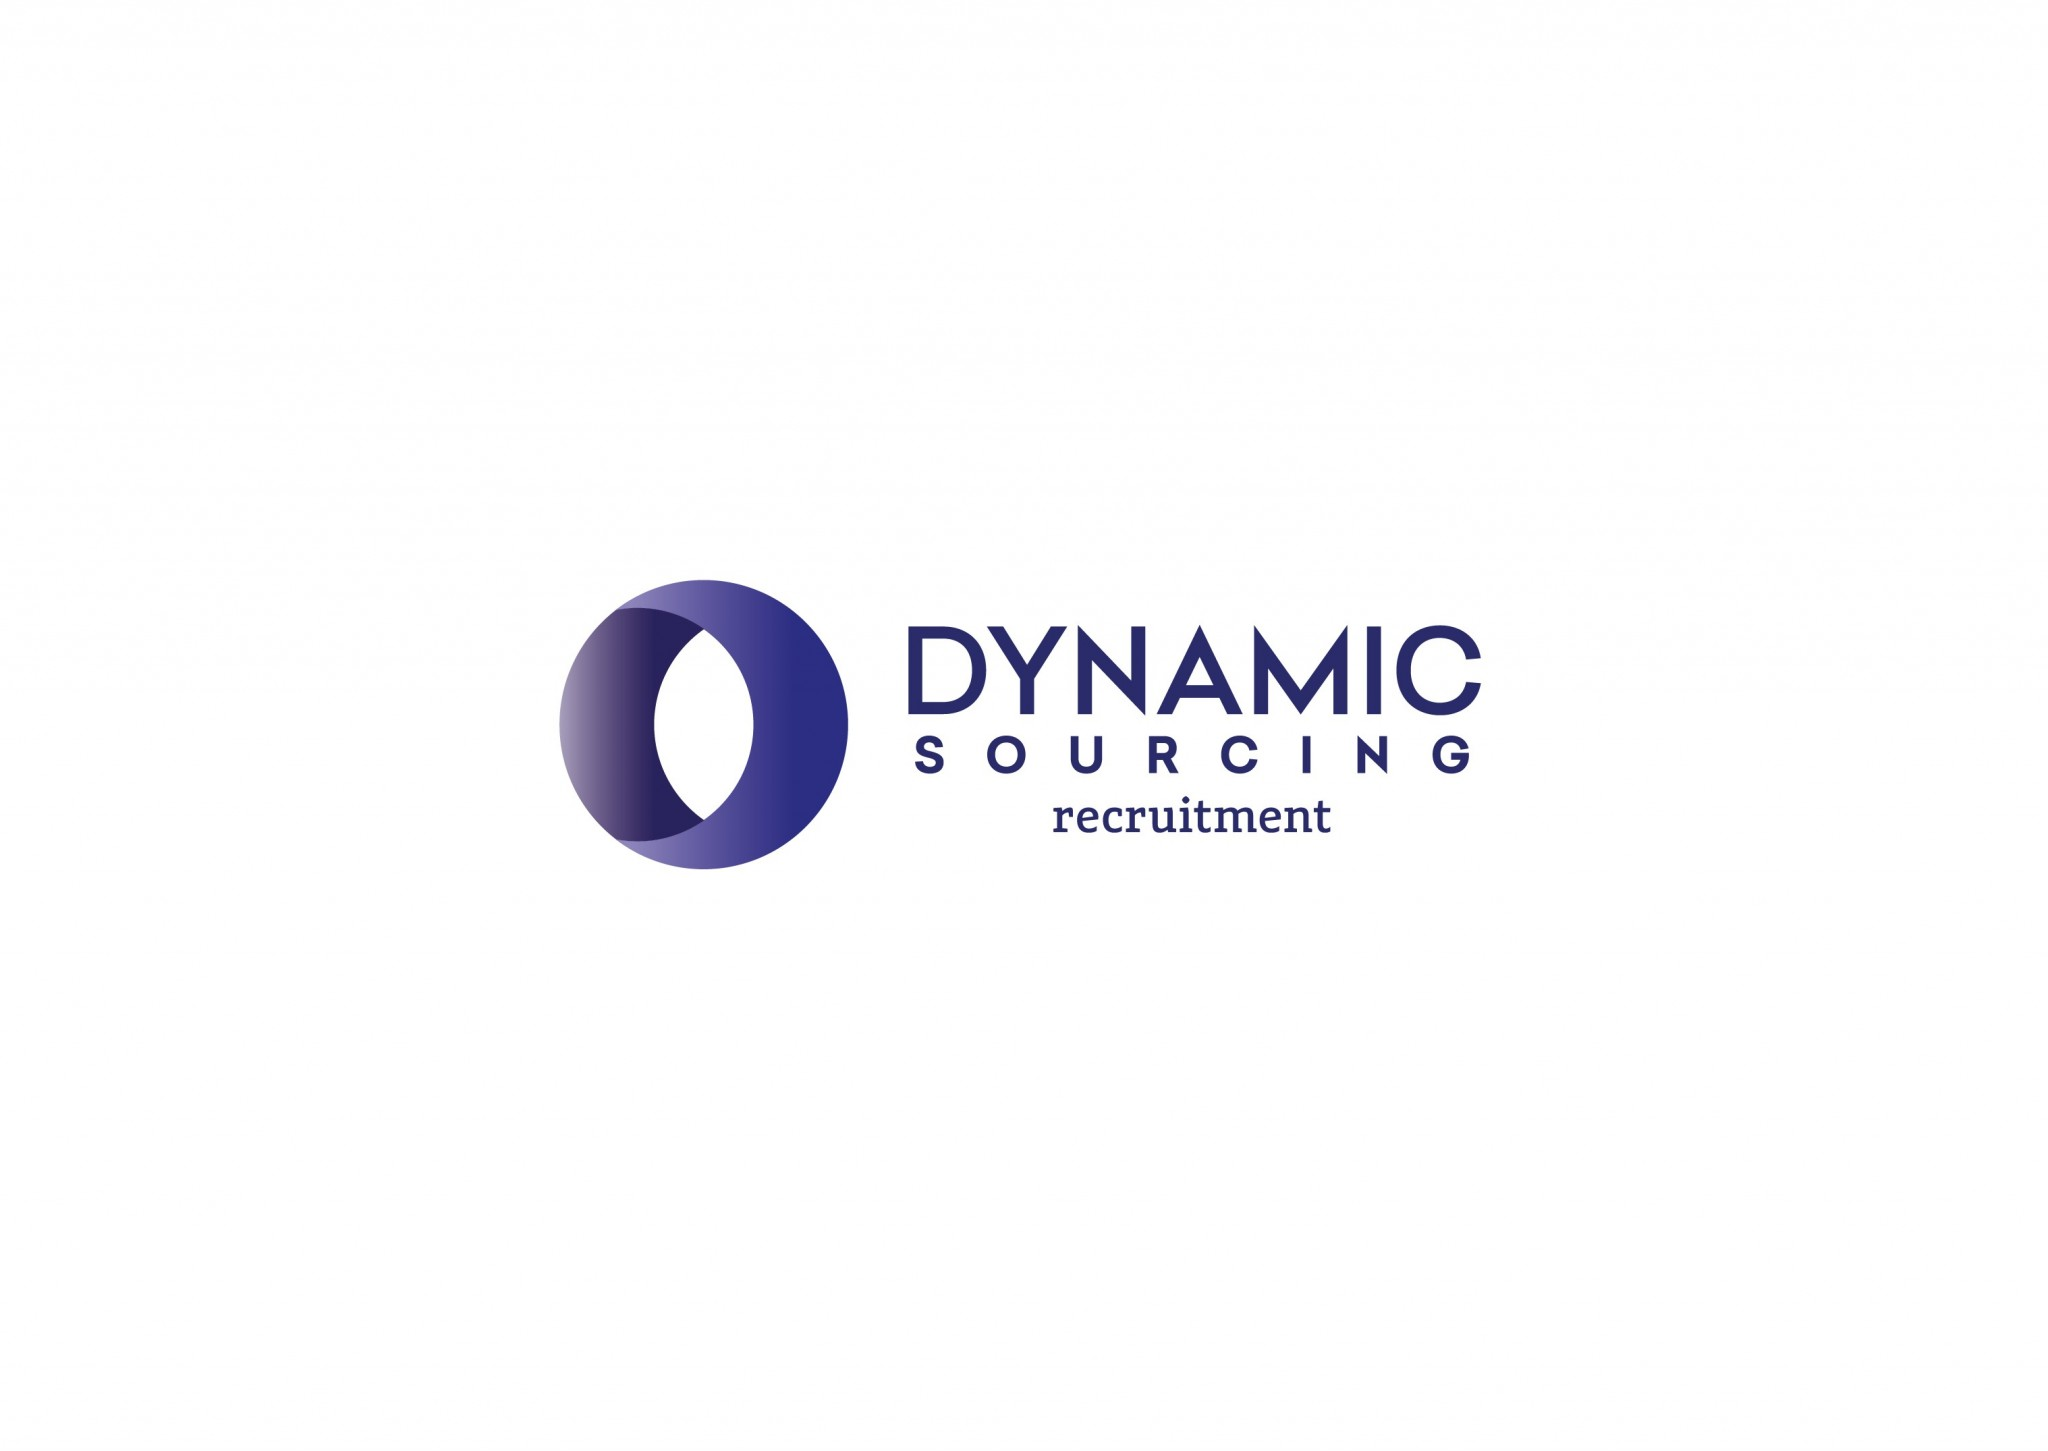 Dynamic Sourcing Brand Design 2